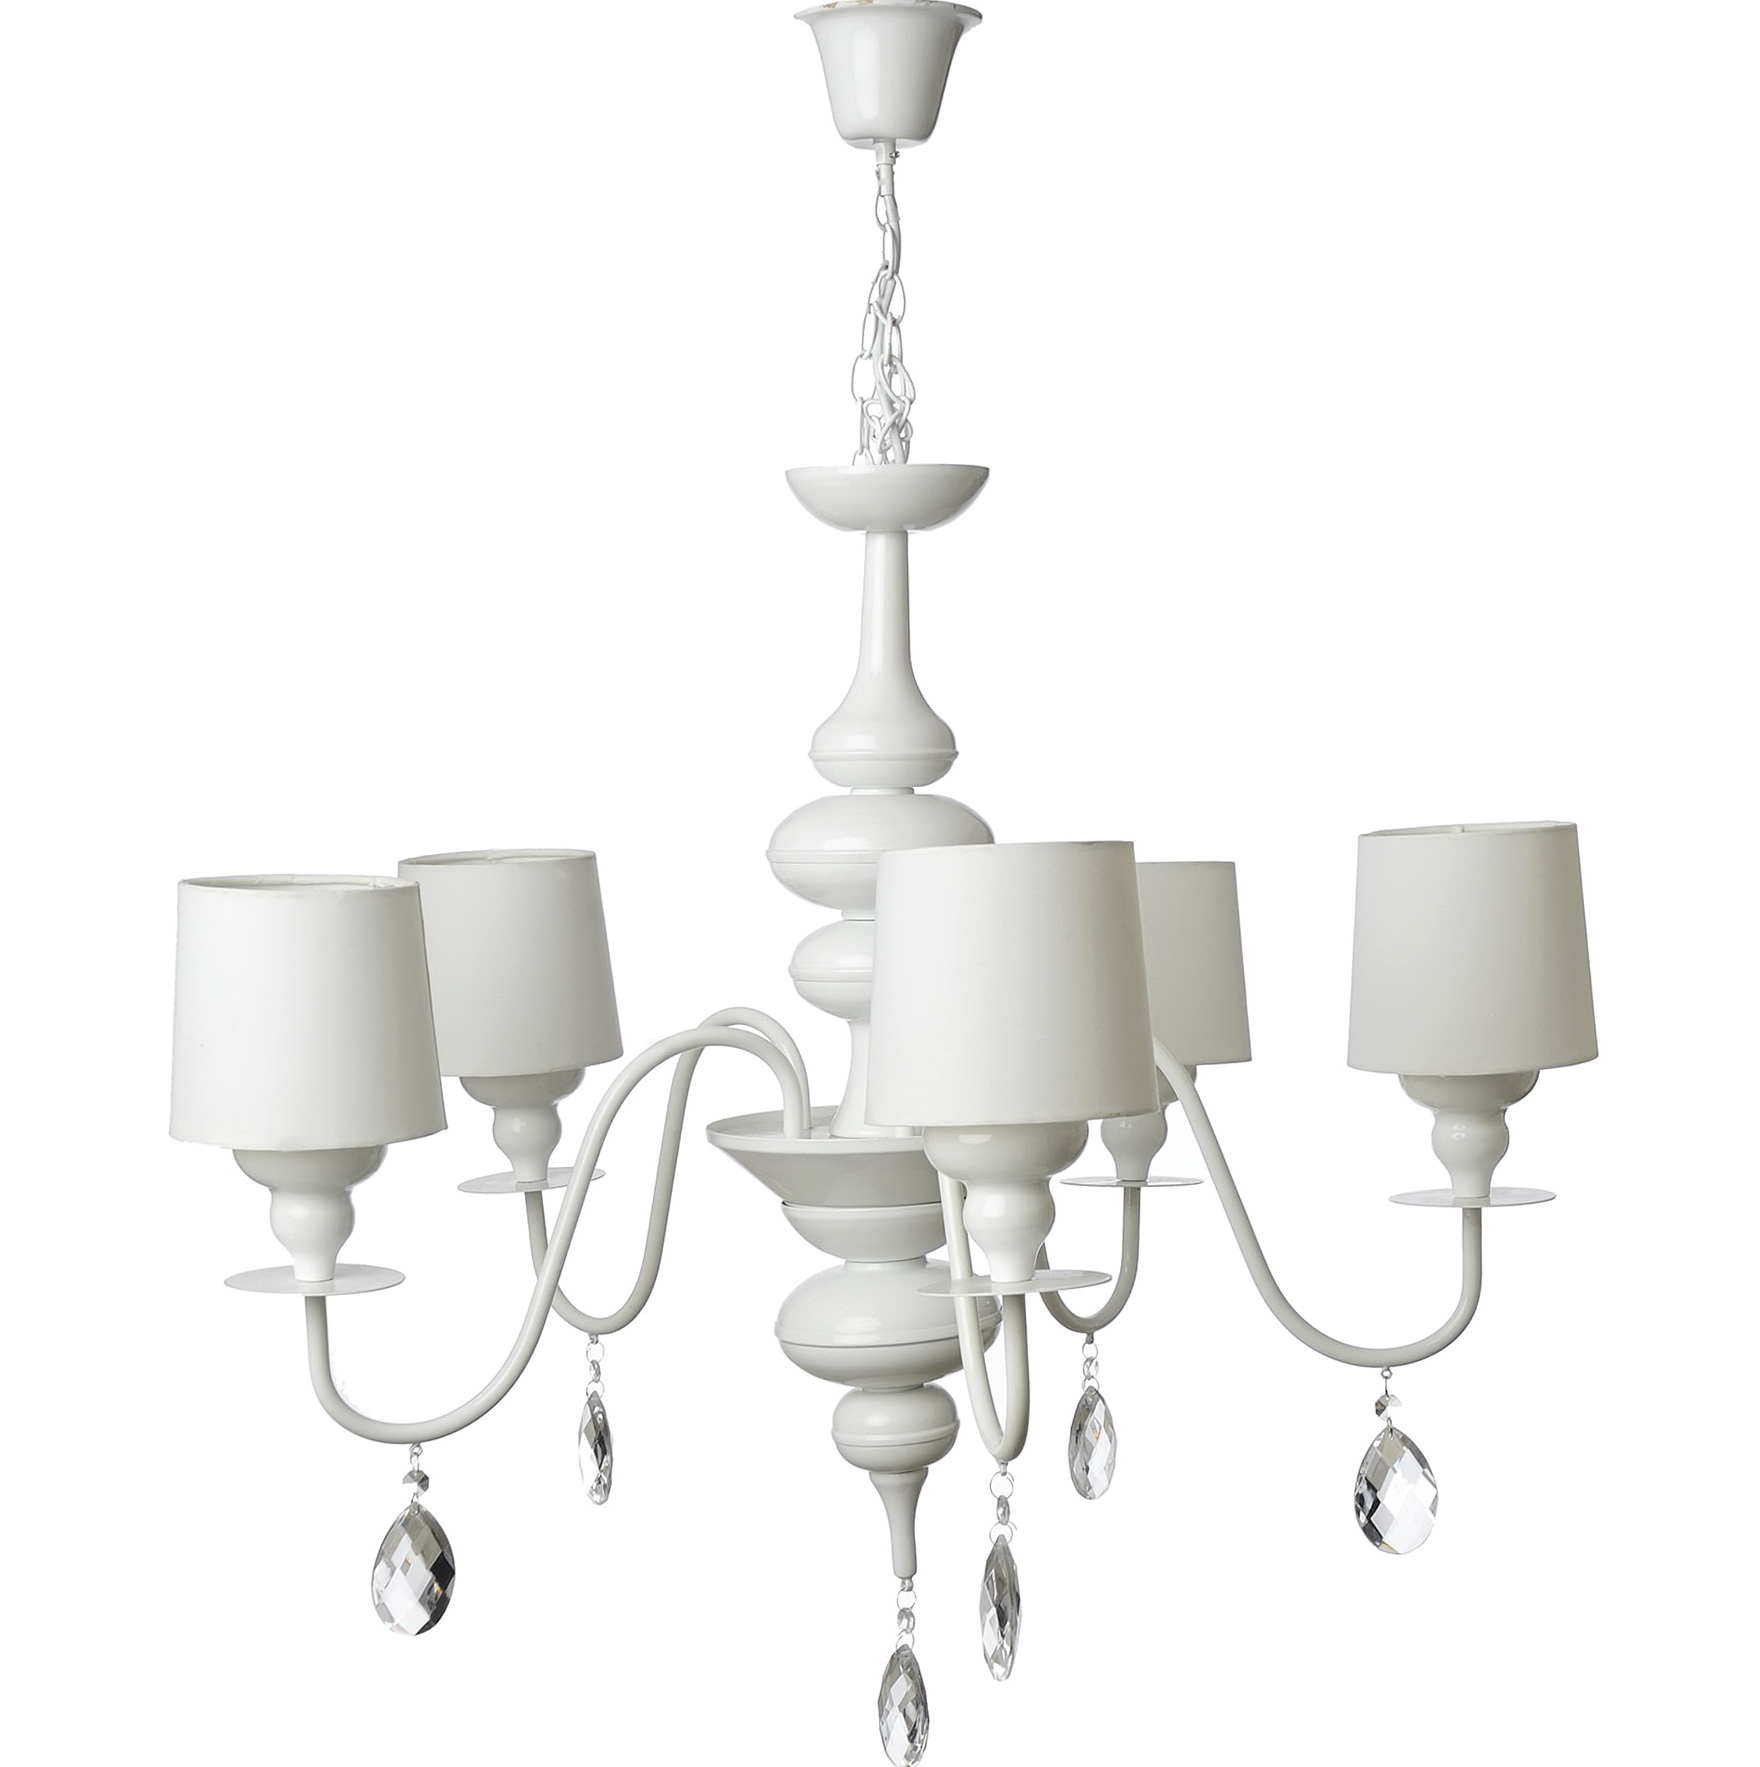 Lamp Shades For Chandeliers Wholesale